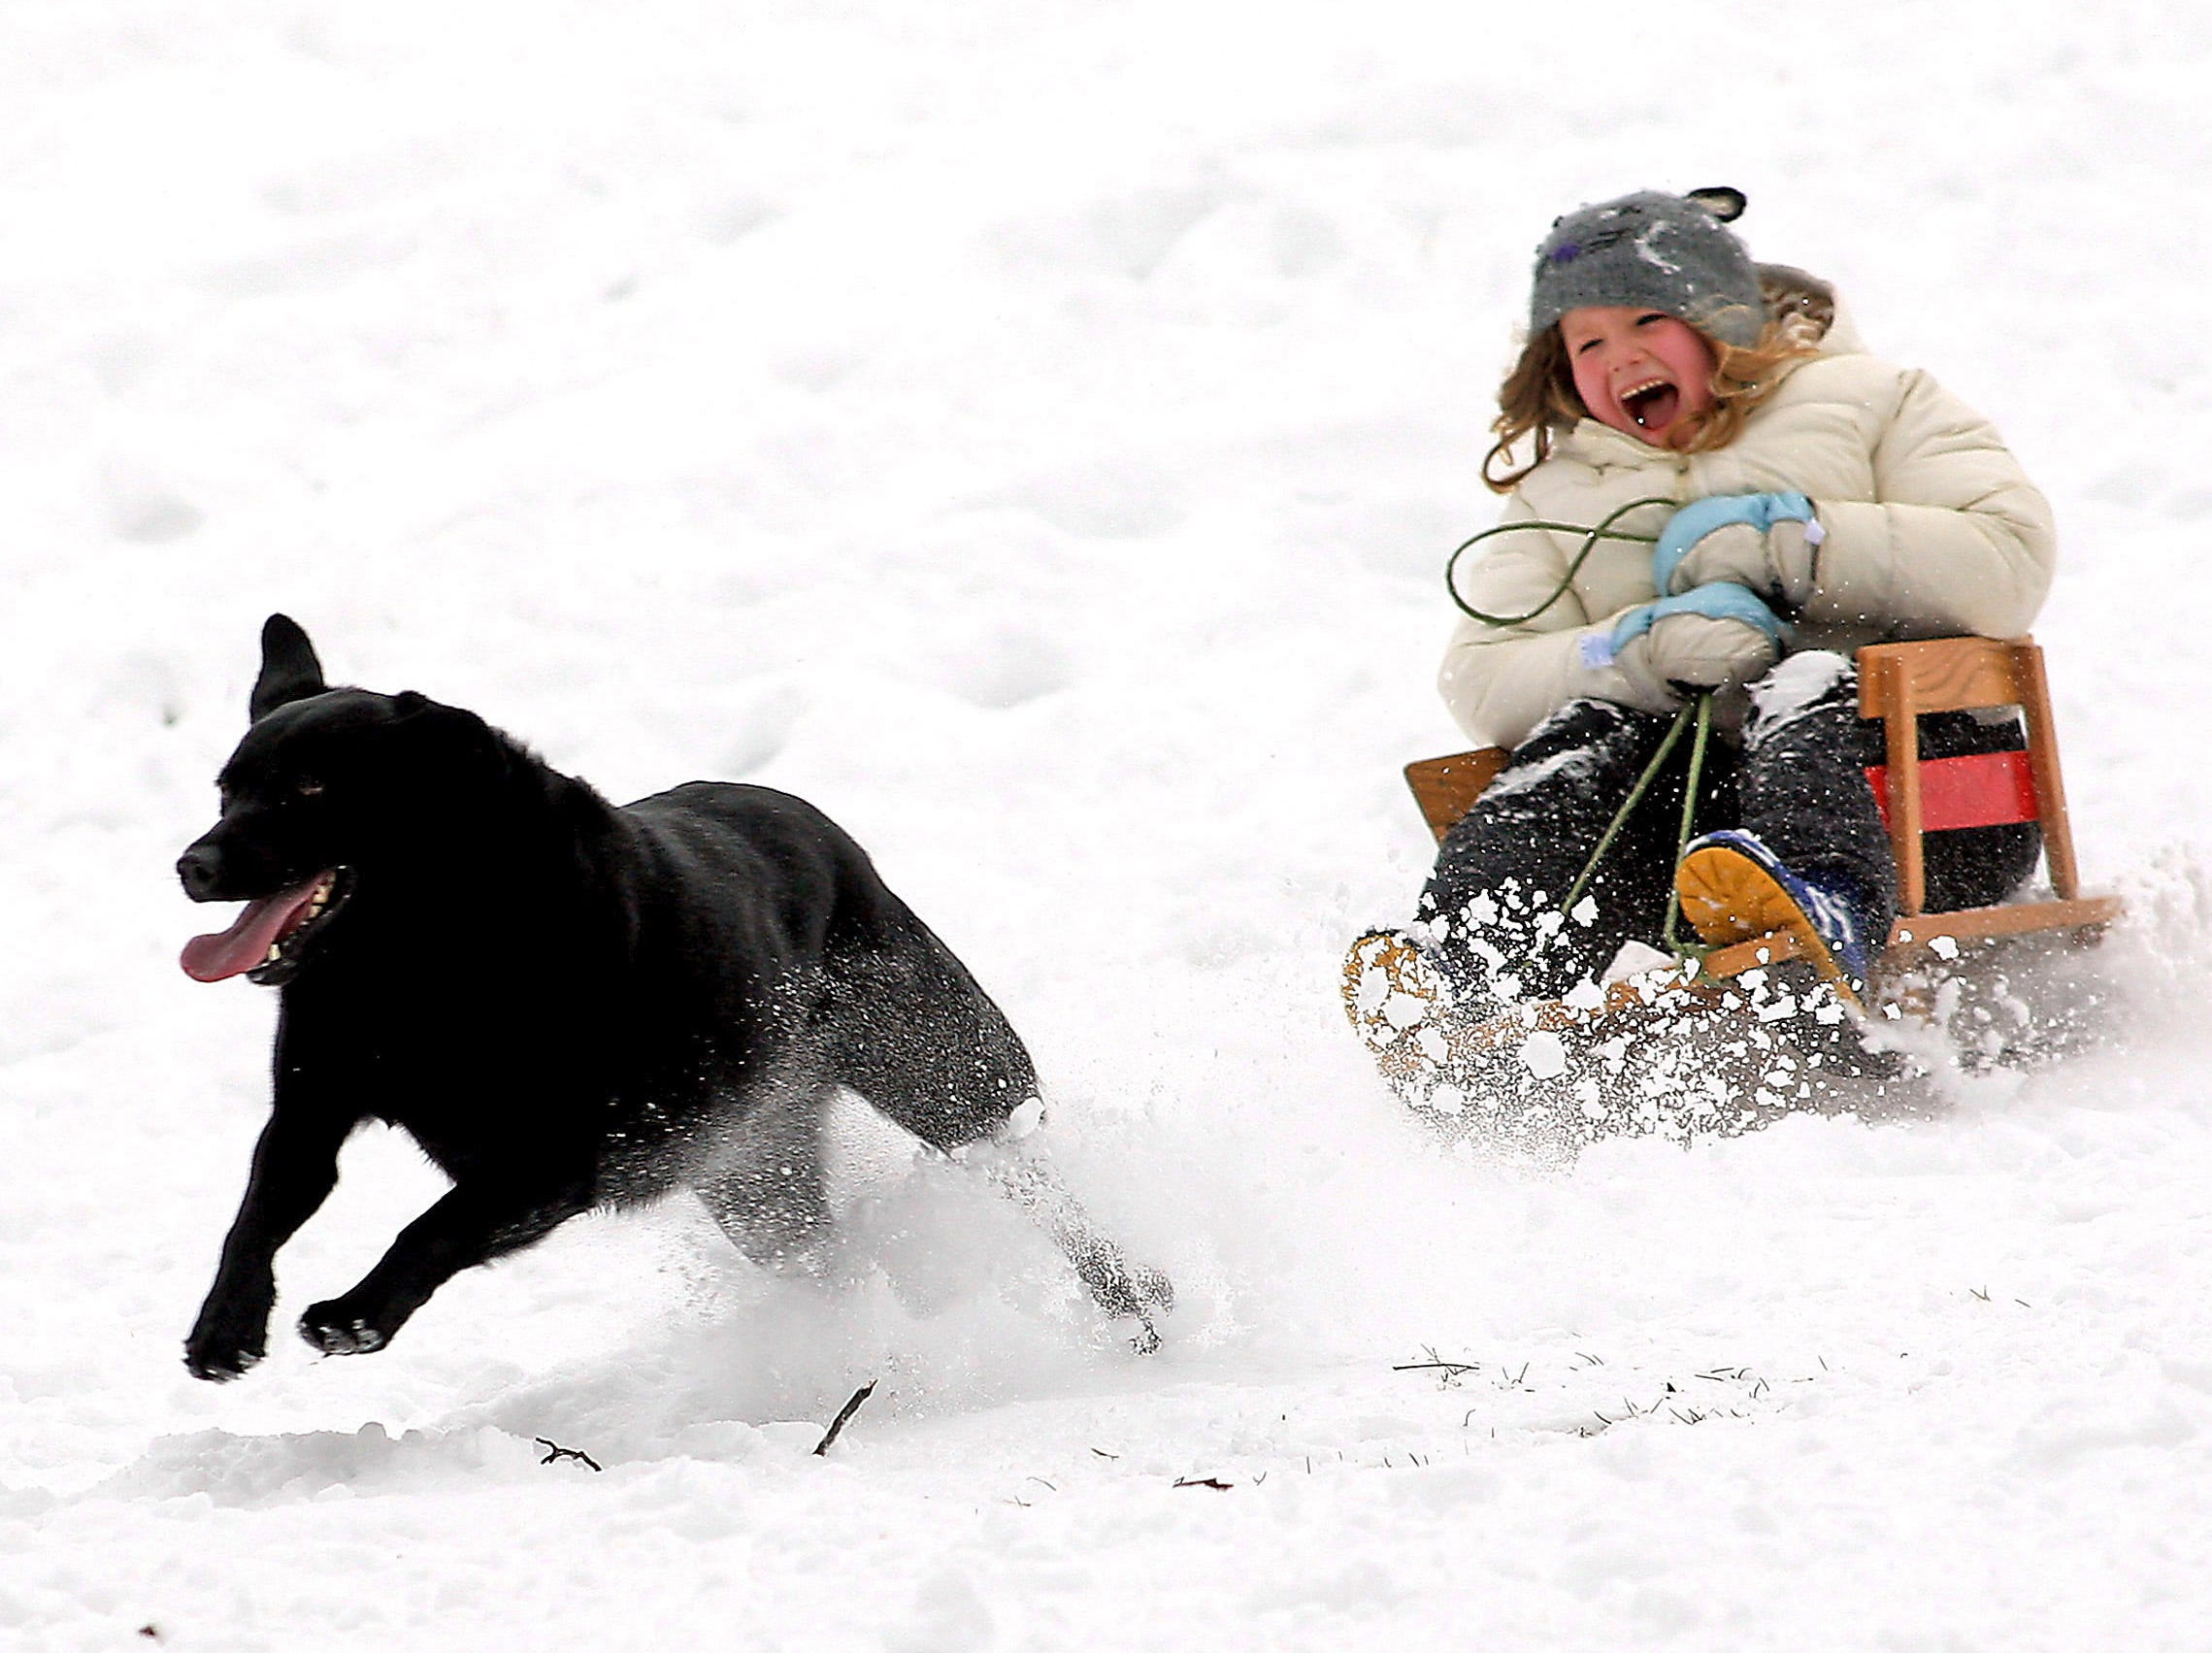 Morris Plains, 01/21/12---6-year-old Julia Breslin of Morris Plains flies down the hill at the Mountain Way School with her dog, Ella while sledding as New Jersey's streak of snow-free weather this winter ended Saturday as six inches fell across Morristown and much of the Garden State. 